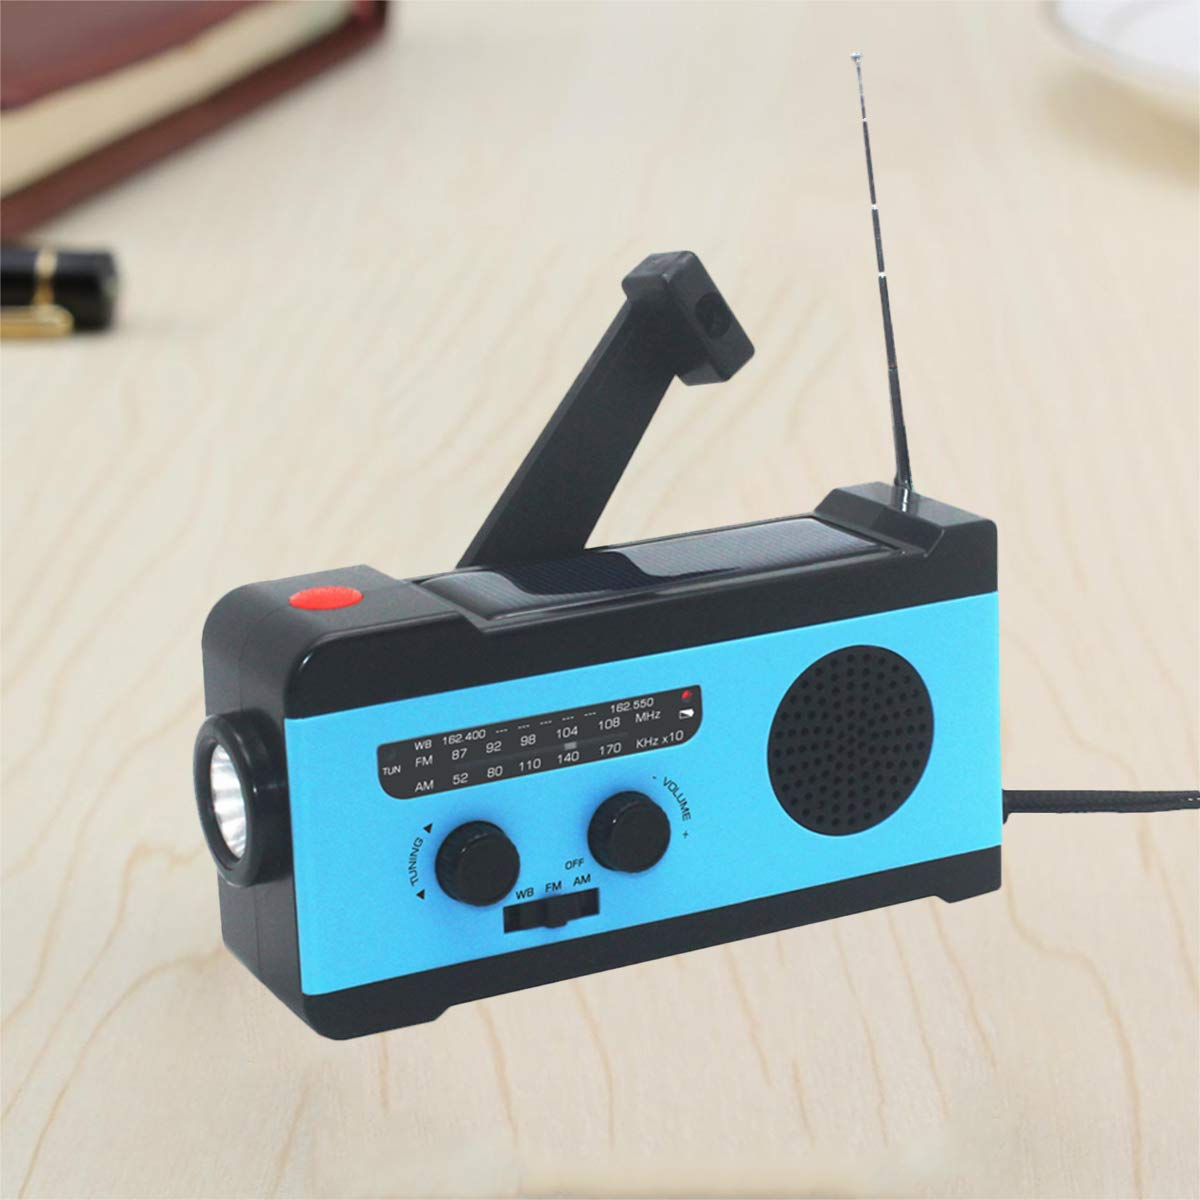 VOSAREA Portable Radio FM Receiver Emergency Radio with Alarm Clock FM Radio FM Receiver by VOSAREA (Image #7)